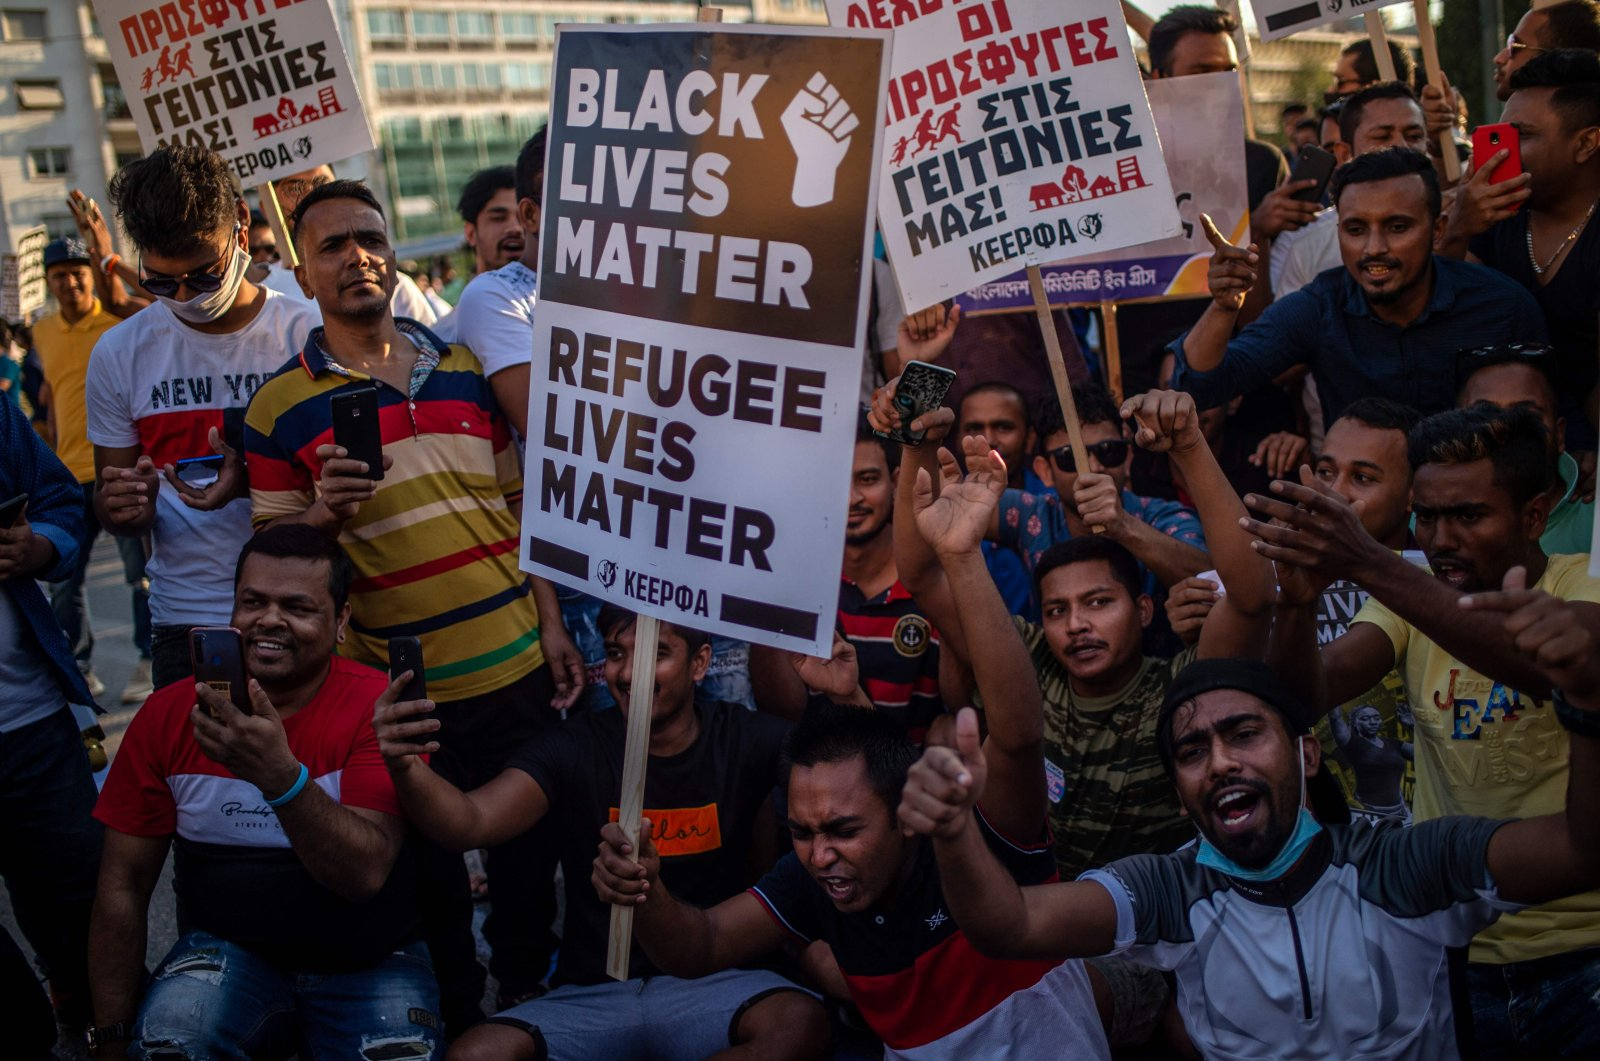 """A protester holds a placard reading """"Black Lives Matter, Refugee Lives Matter"""" during a demonstration to demand rights and housing for refugees and migrants in Greece, June 26, 2020. (AFP Photo)"""